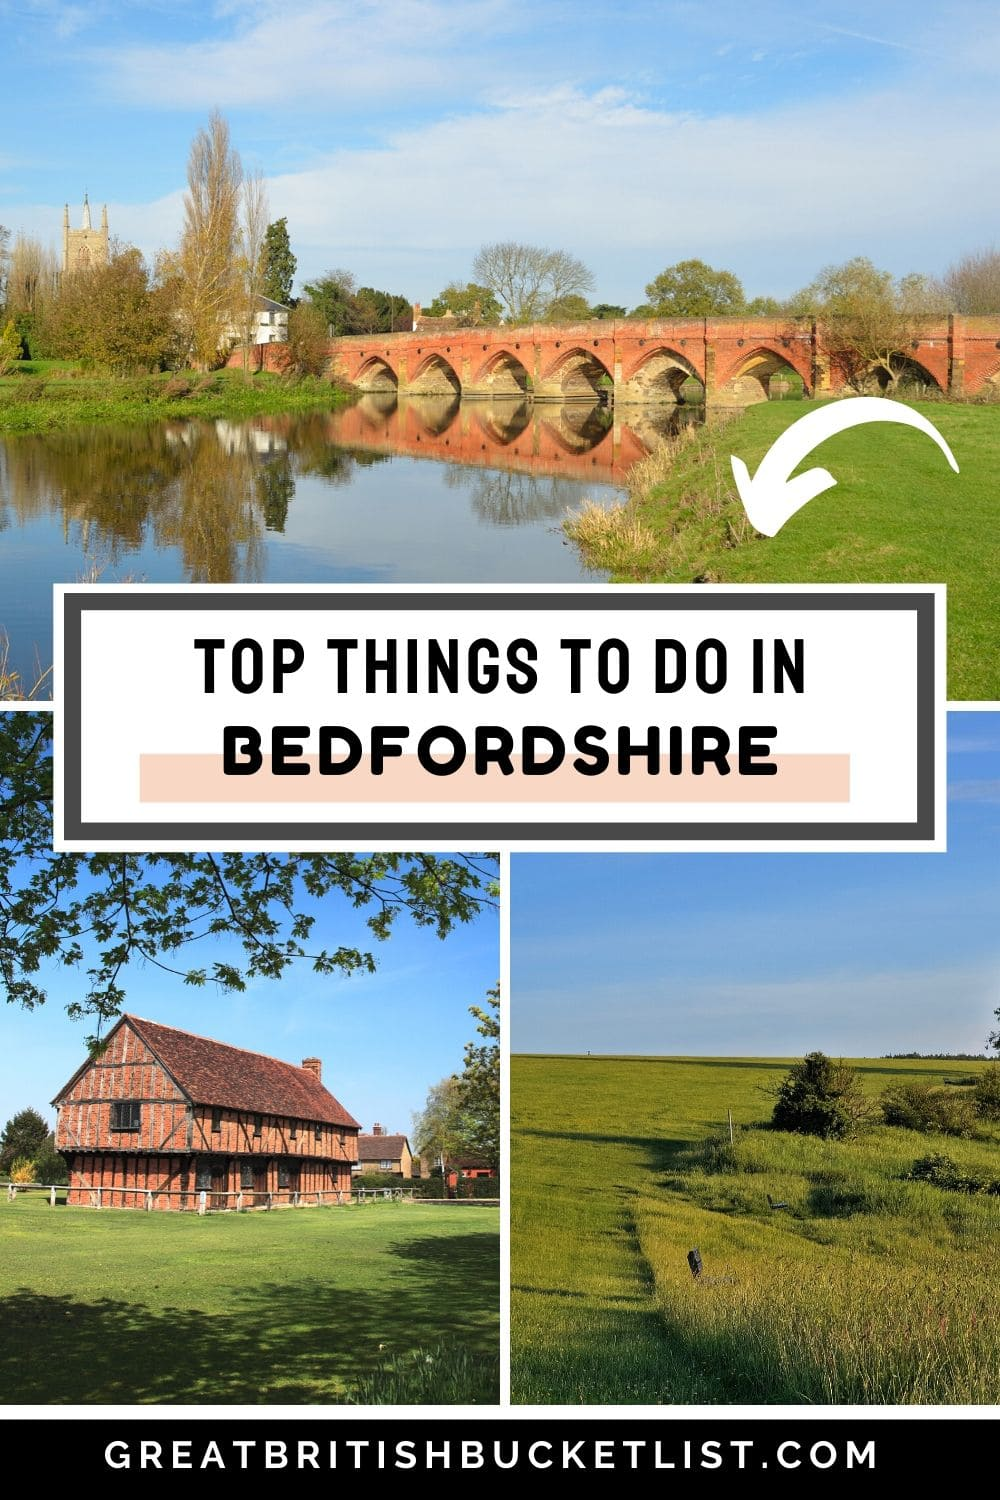 Top Things To Do In Bedfordshire